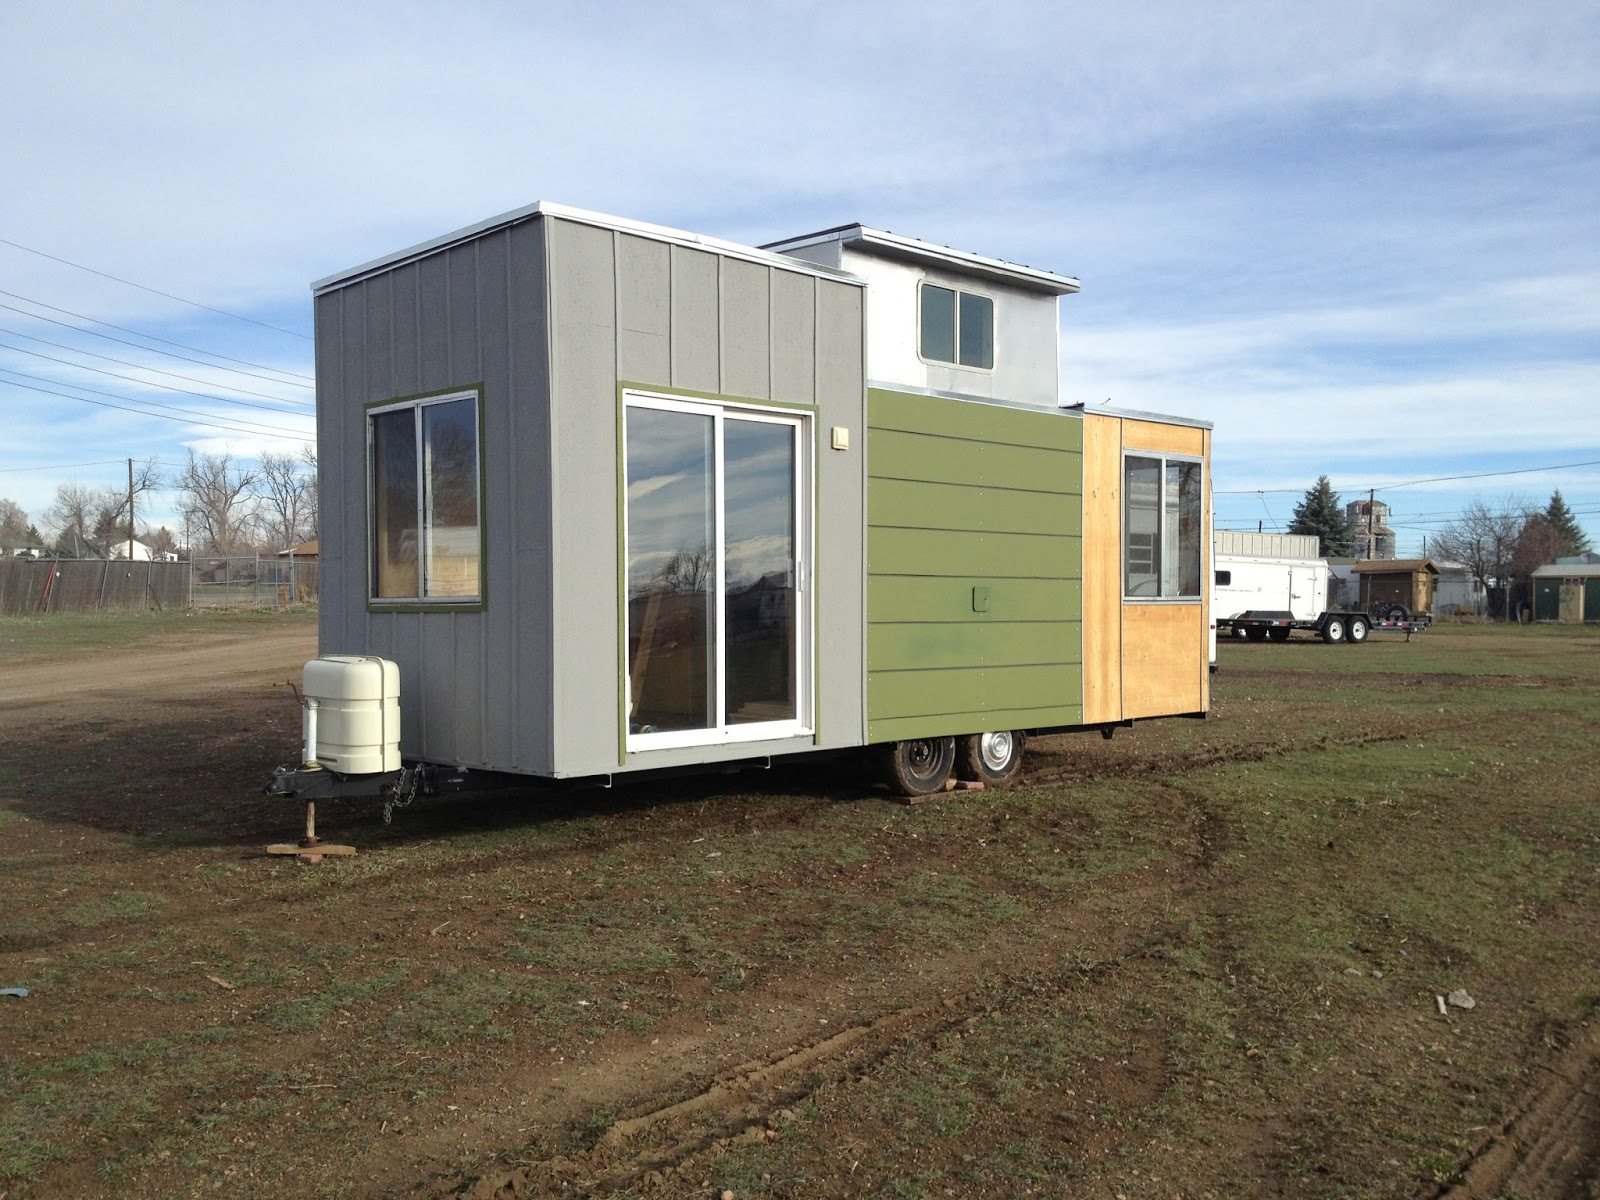 The adventure of turning an old camper into a tiny house on wheels the evolution continues - Small houses wheels home getaway ...